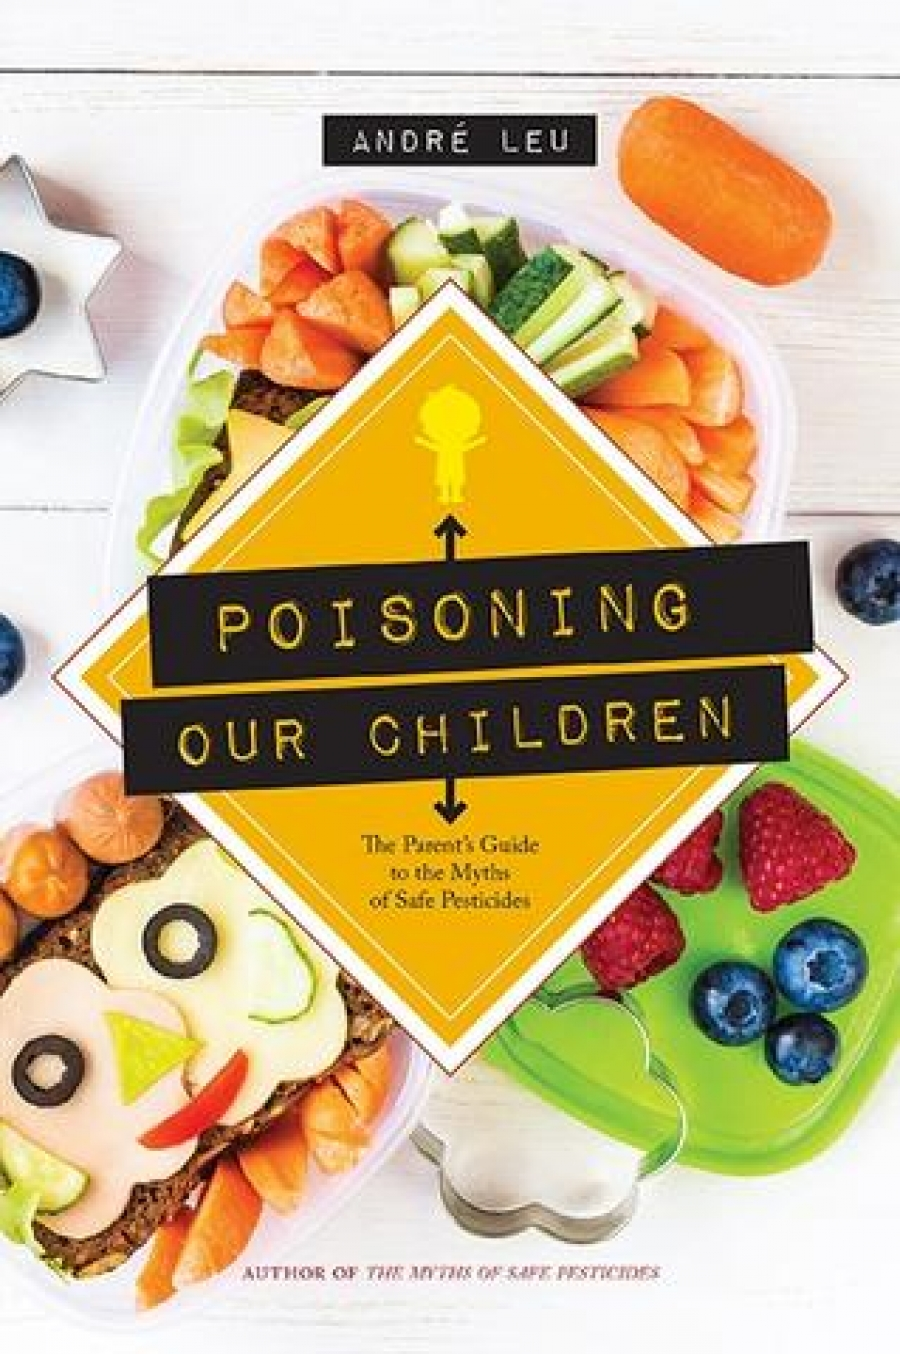 Red Diamond Compost - [Review] Poisoning Our Children: The